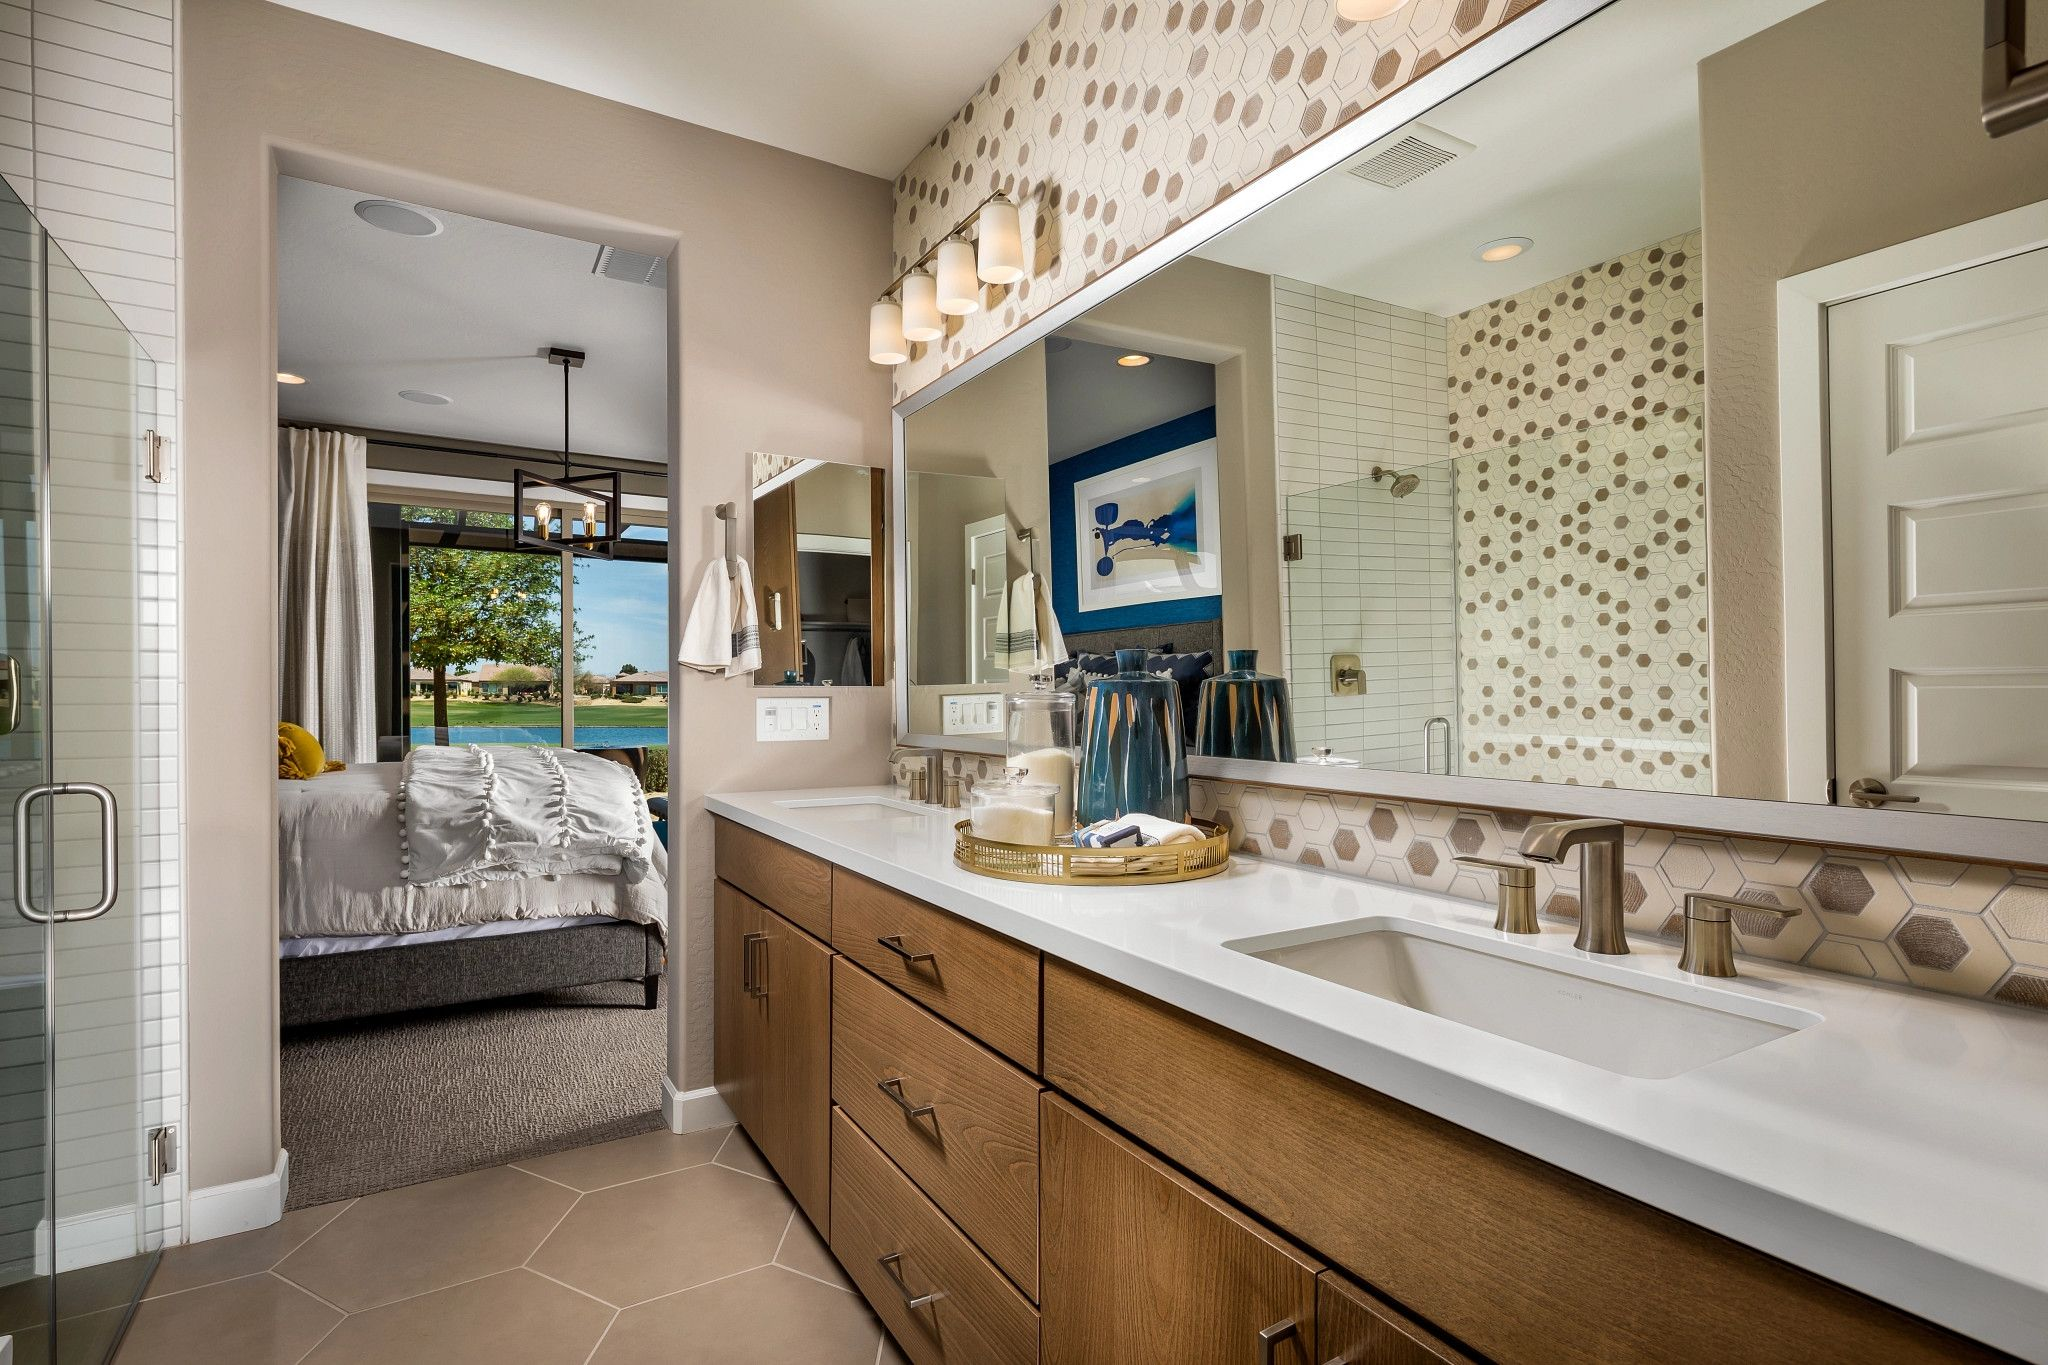 Bathroom featured in the Evia By Shea Homes - Trilogy in Phoenix-Mesa, AZ